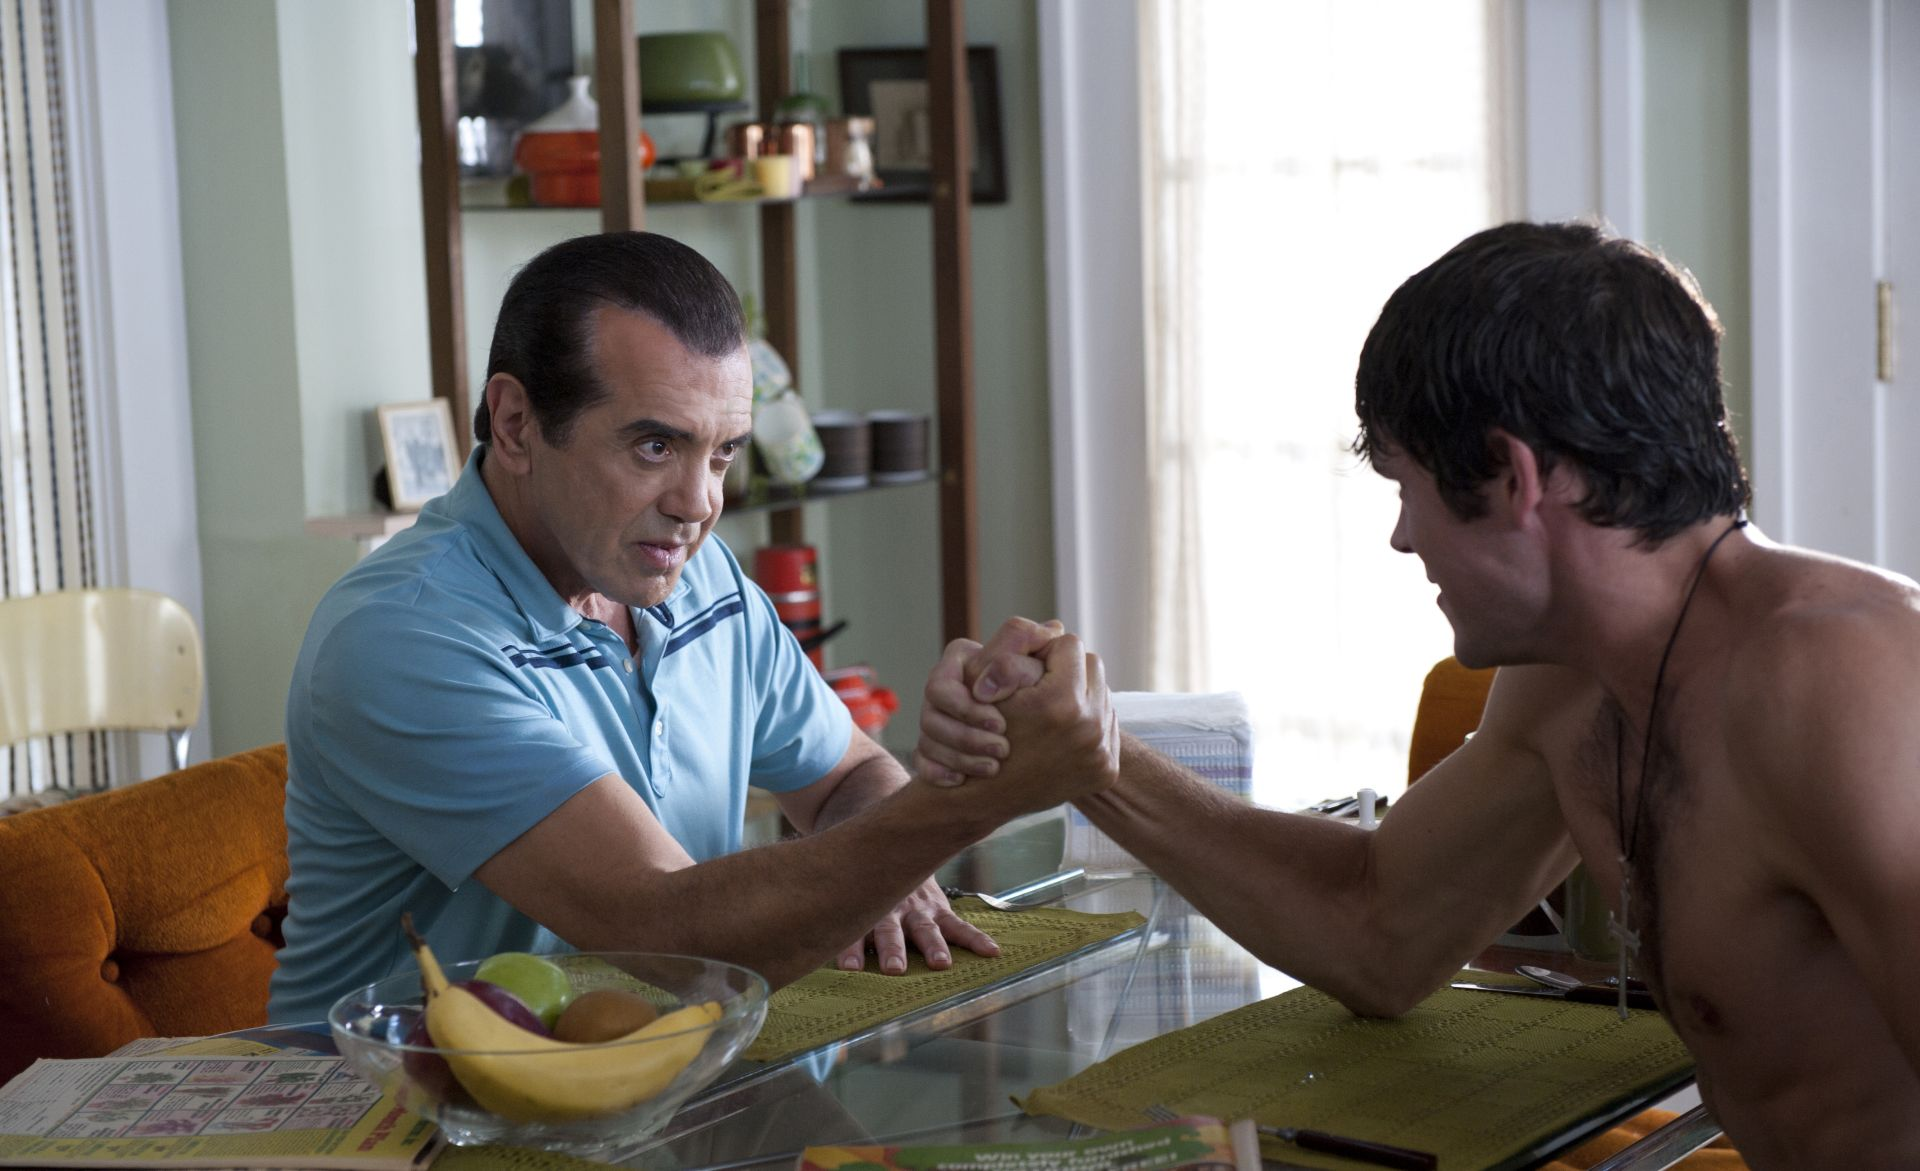 Chazz Palminteri Goes To Bed Hungry Huffpost